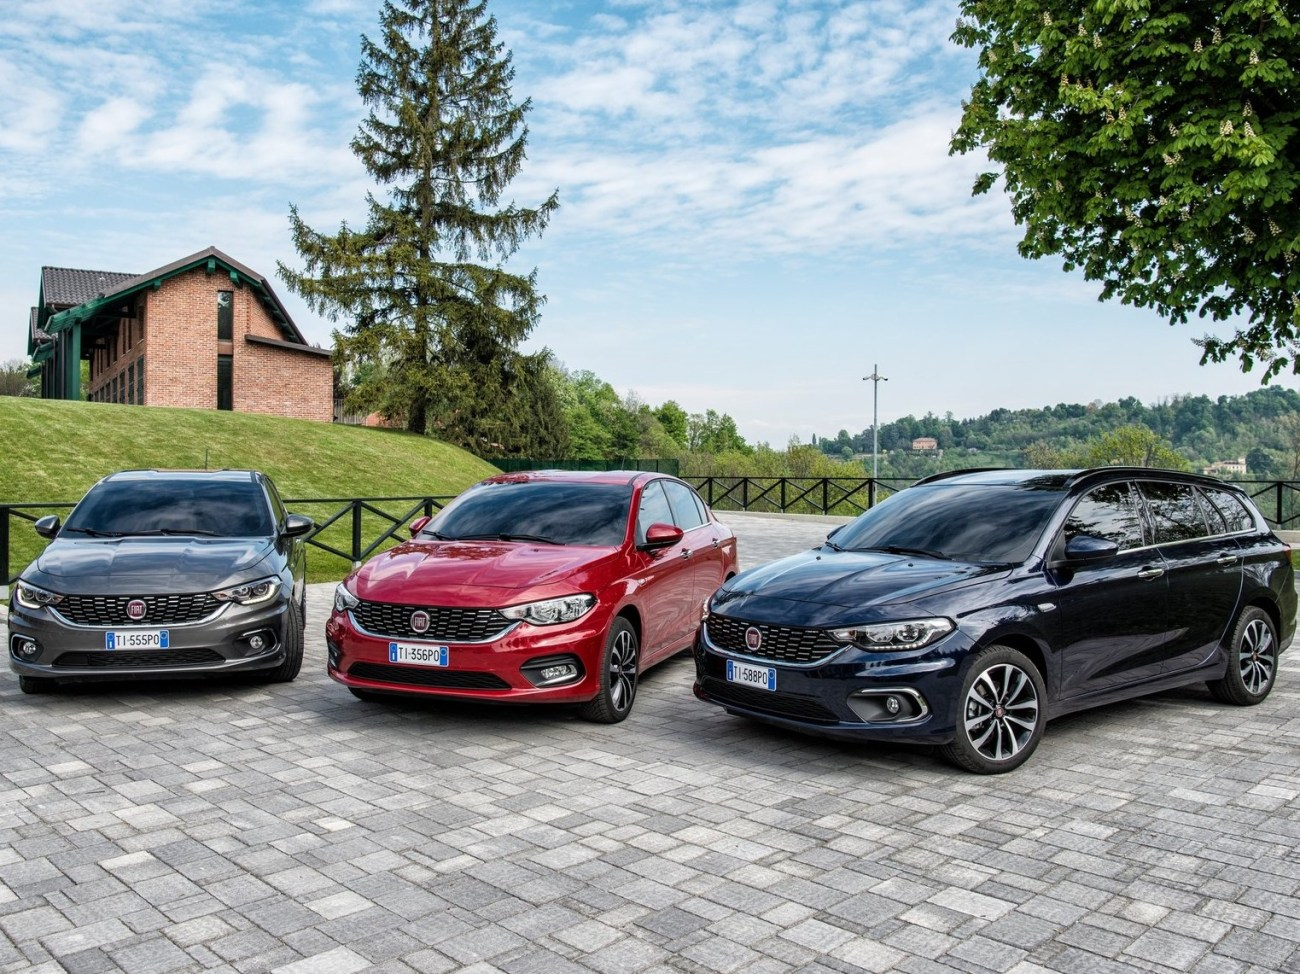 Fiat-Tipo_Station_Wagon-2017-1600-08